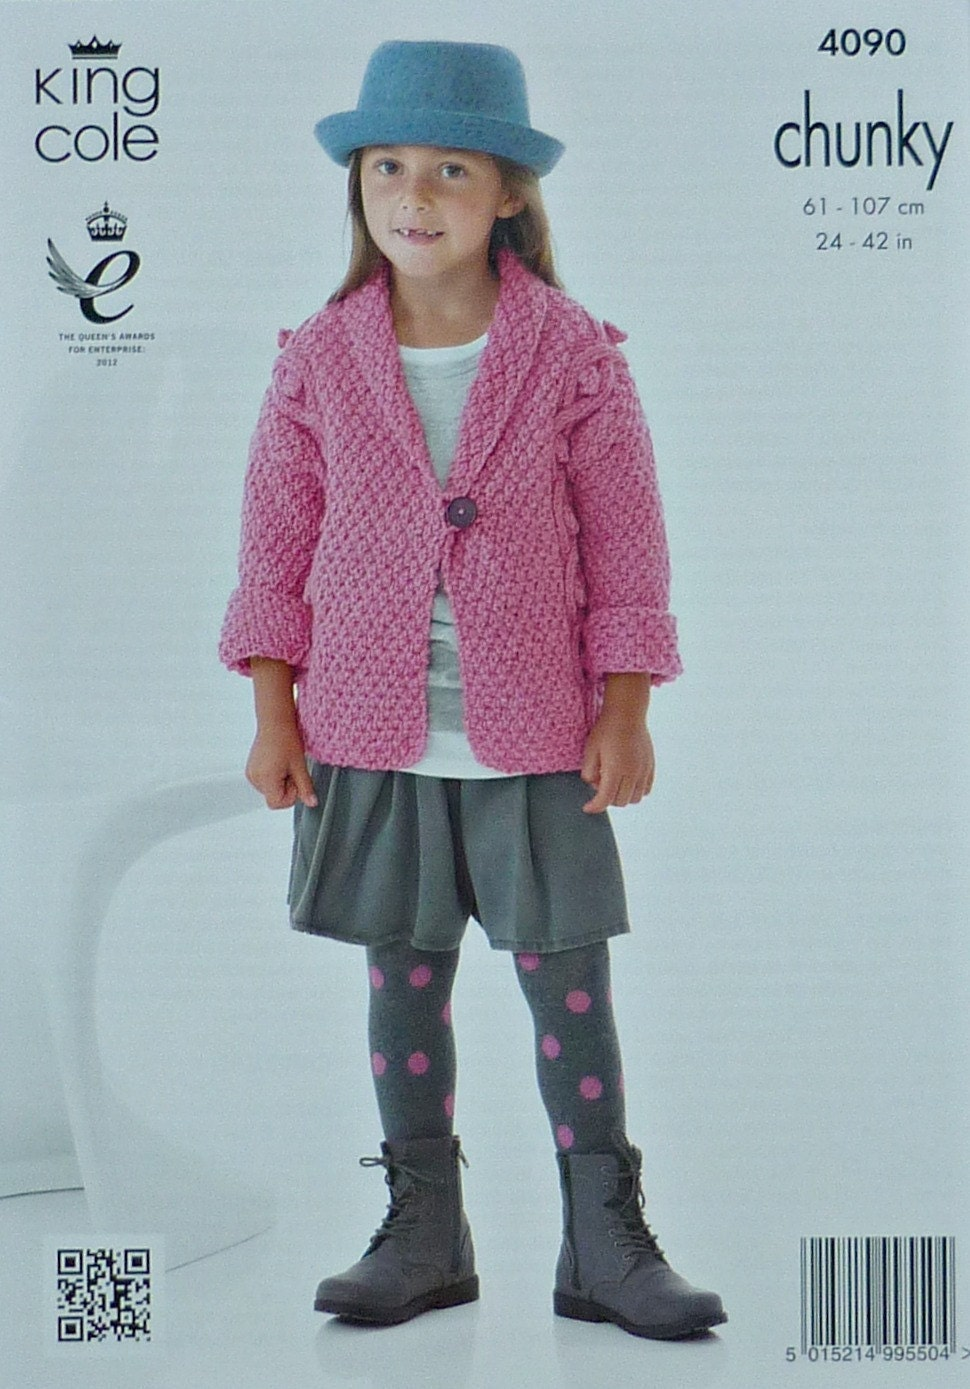 Girls Knitting Pattern K4090 Childrens/Ladies 3/4 Sleeve Cable Jacket with Ro...